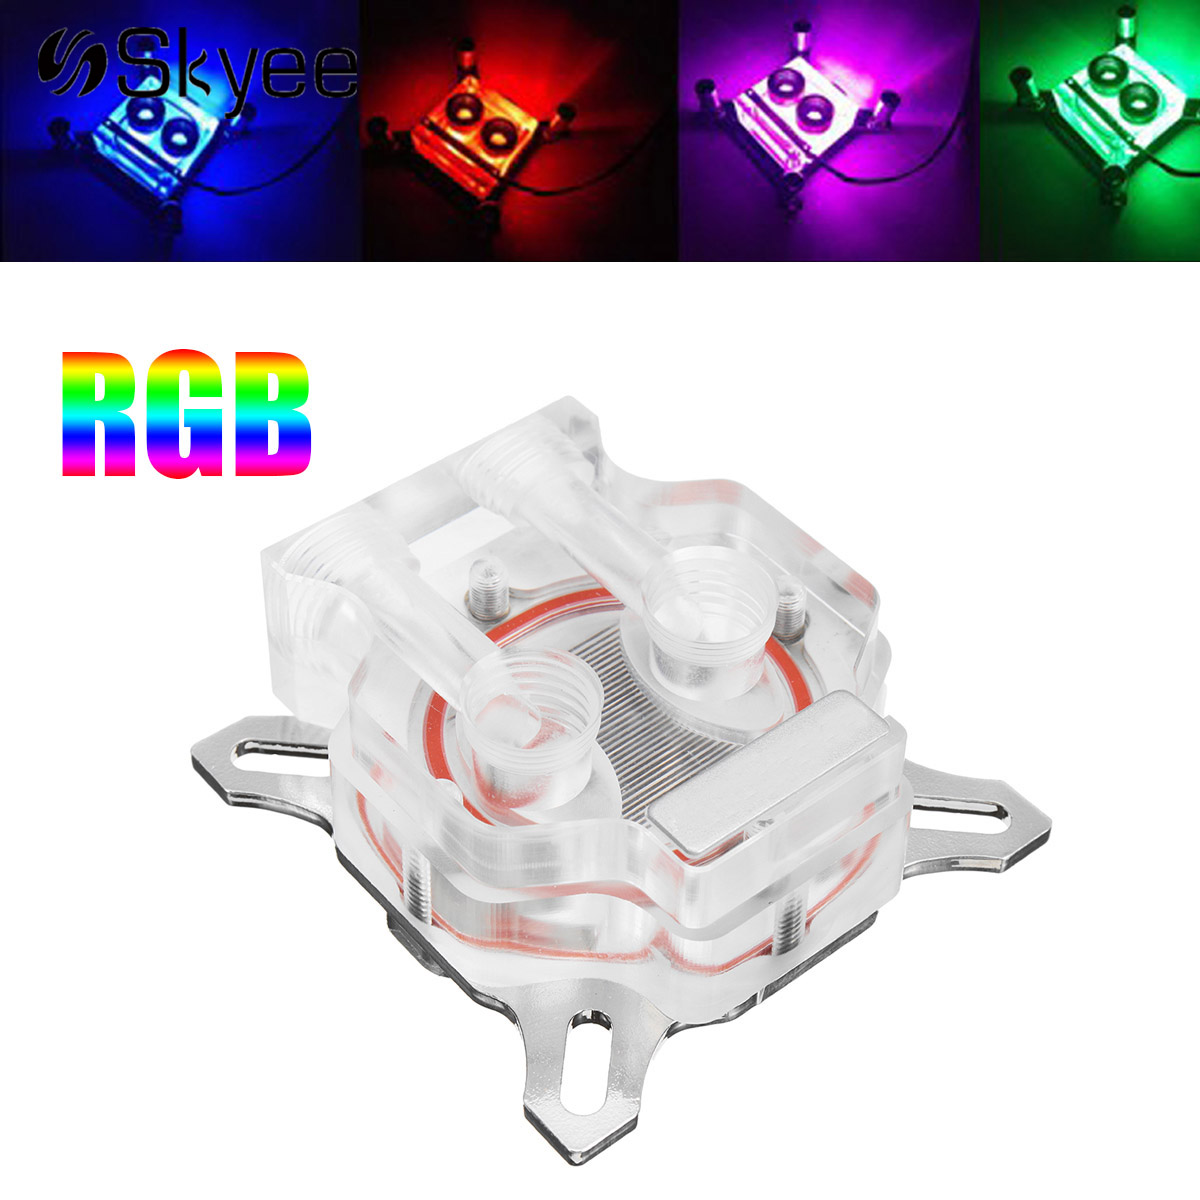 RGB Control Water Cooling Block Video Card GPU Core Cover Water Heatsink Suitable for 43mm-53mm Hole Pitch VGA-TMD Support AURA 4pin mgt8012yr w20 graphics card fan vga cooler for xfx gts250 gs 250x ydf5 gts260 video card cooling